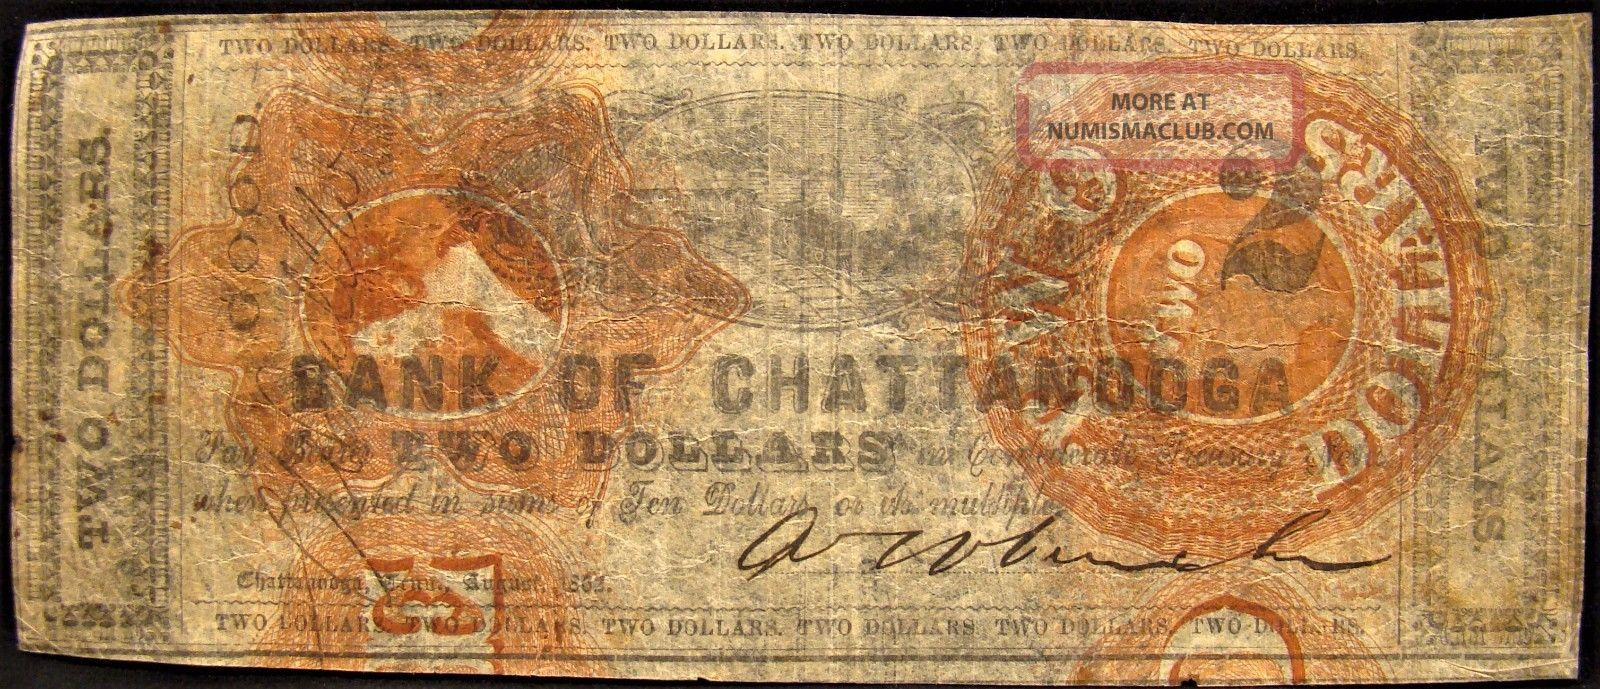 Rare 1862 Dated Confederate Bank Of Chattanooga $2.  00 Note. Paper Money: US photo